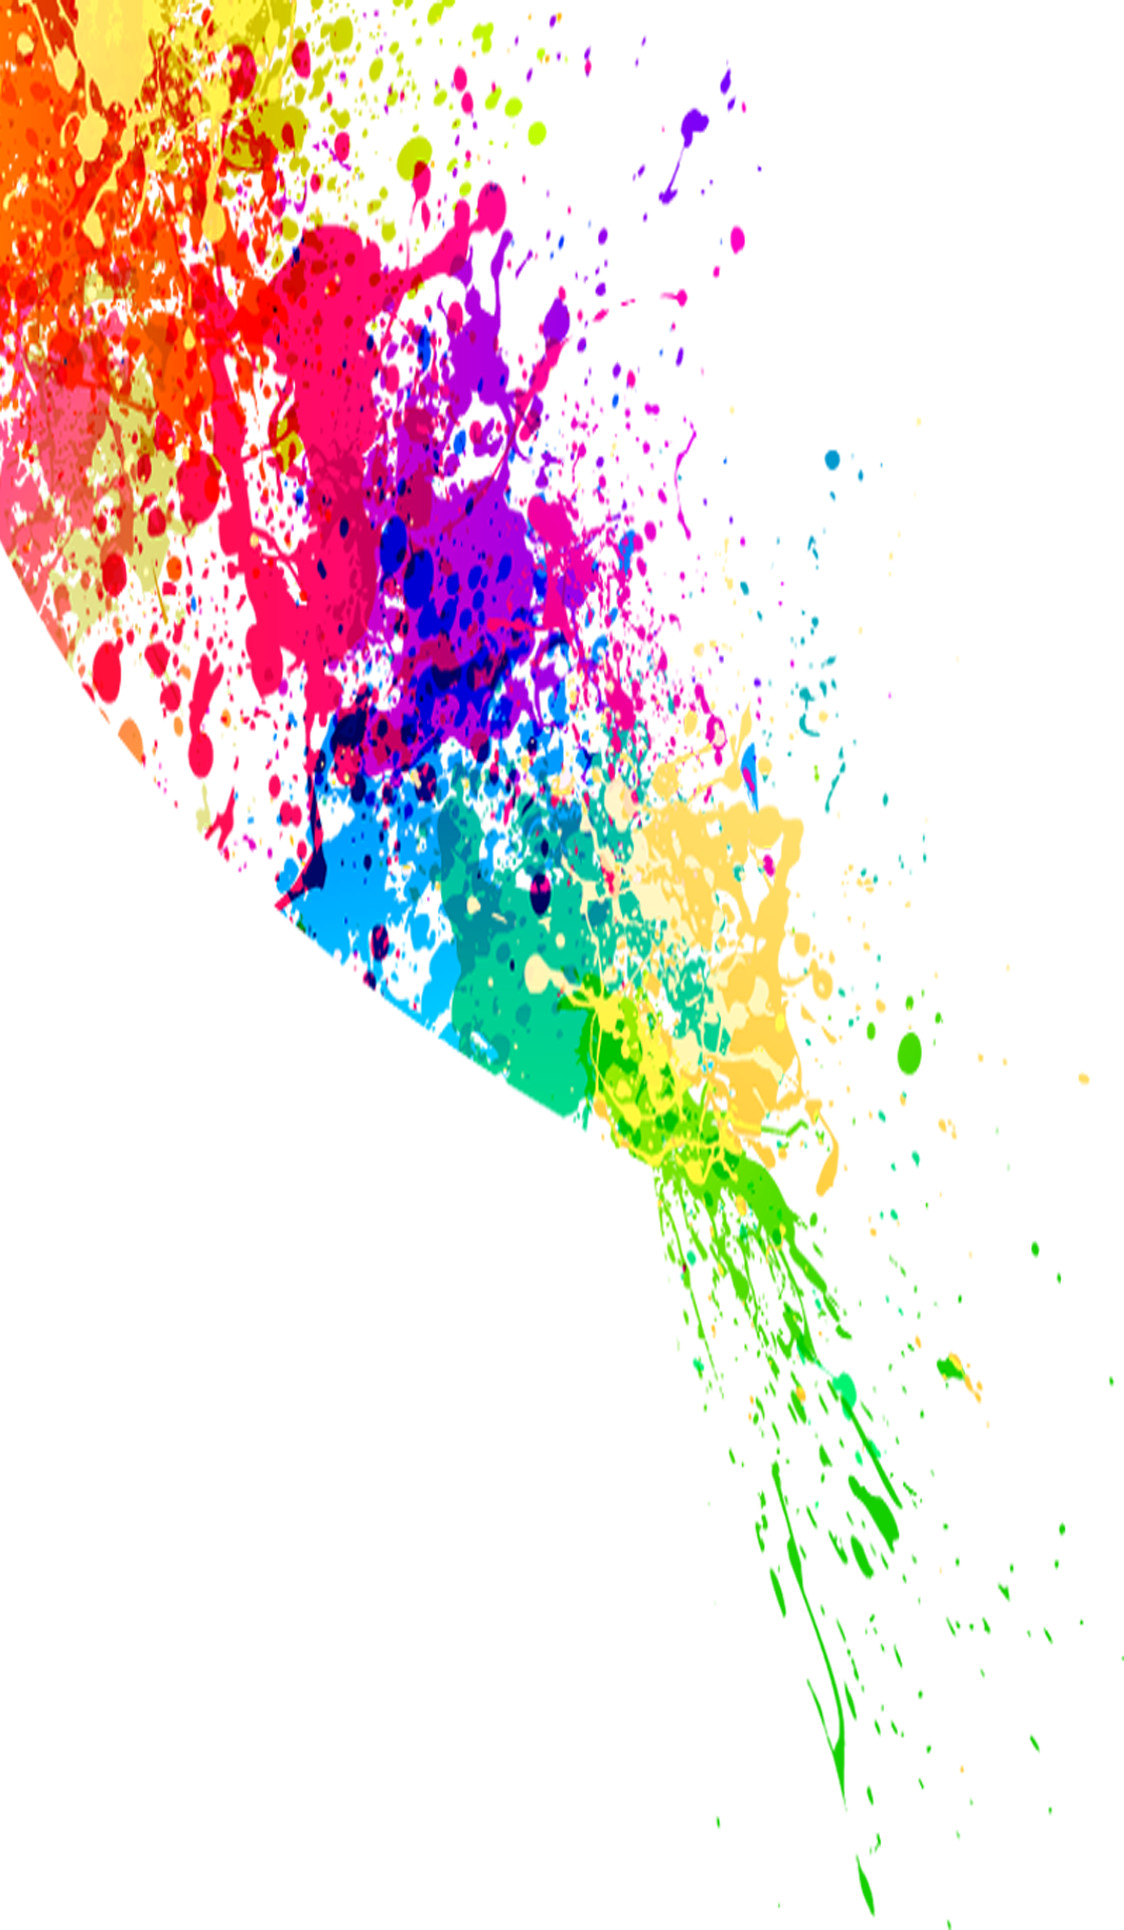 Splatter Backgrounds (46+ images)